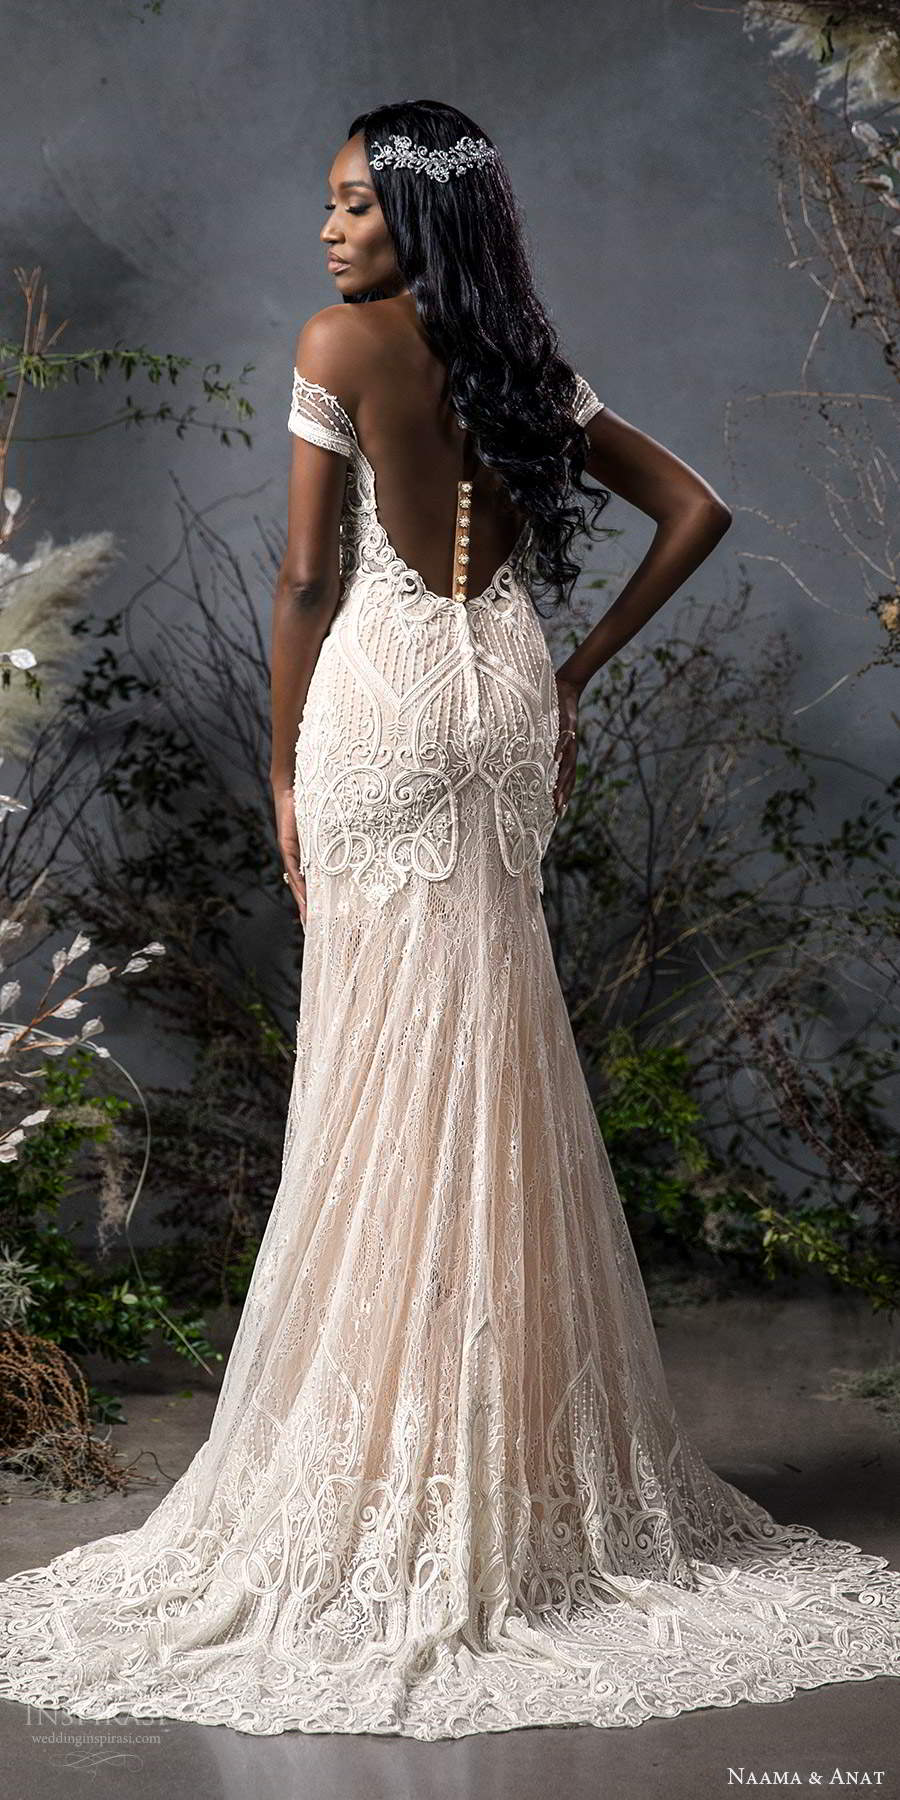 naama anat fall 2020 bridal off shoulder sweetheart neckline fully embellished fit flare wedding dress chapel train illusion back (3) bv